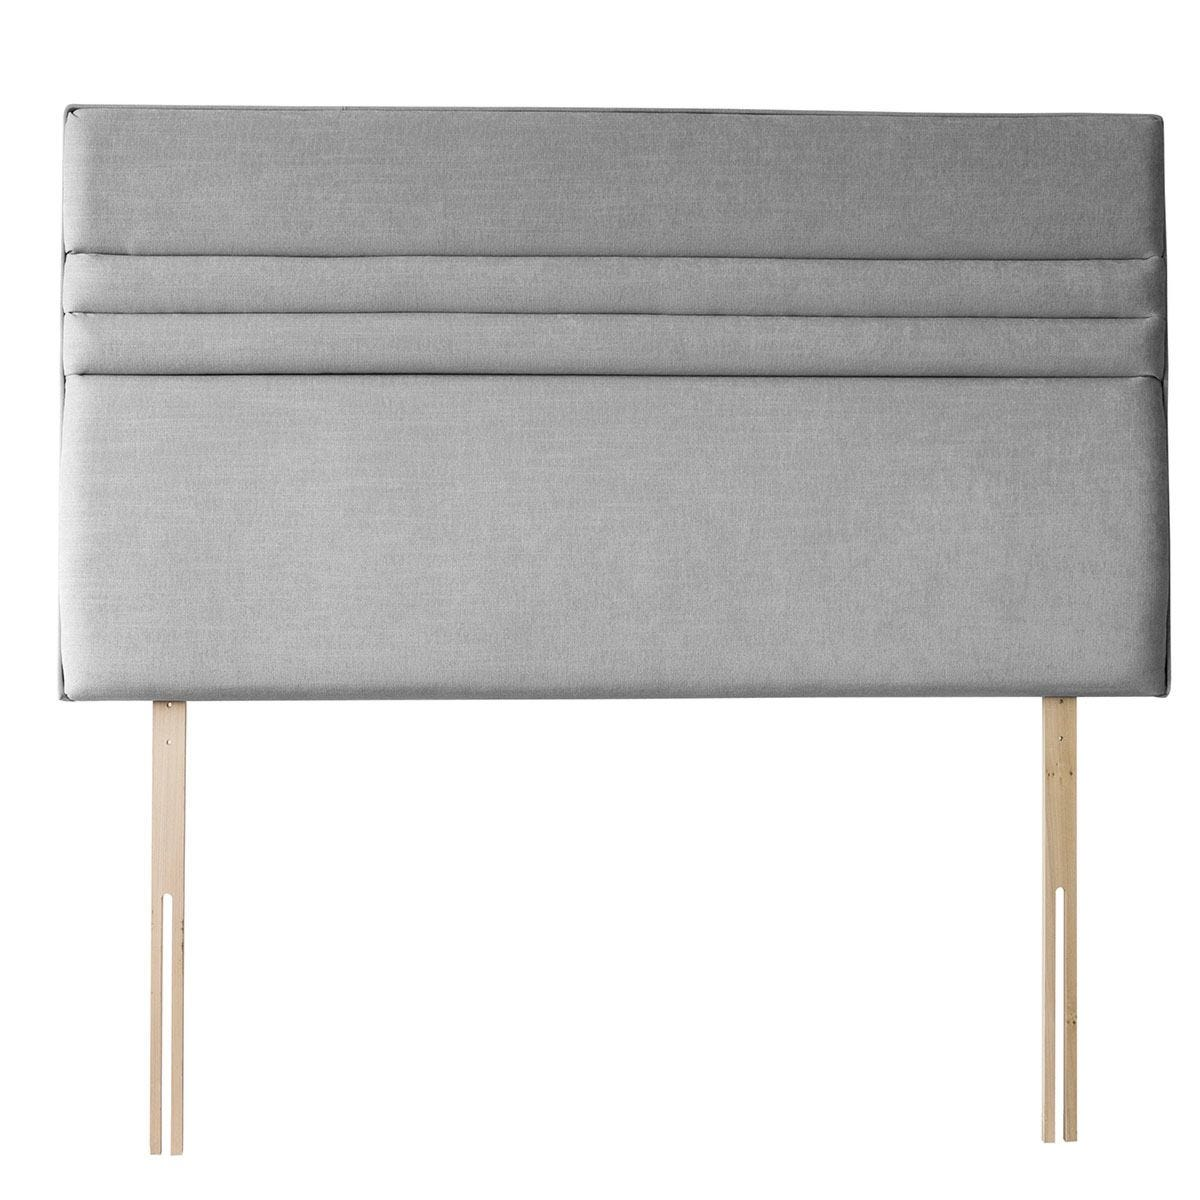 Silentnight Roma Grey Headboard - Double